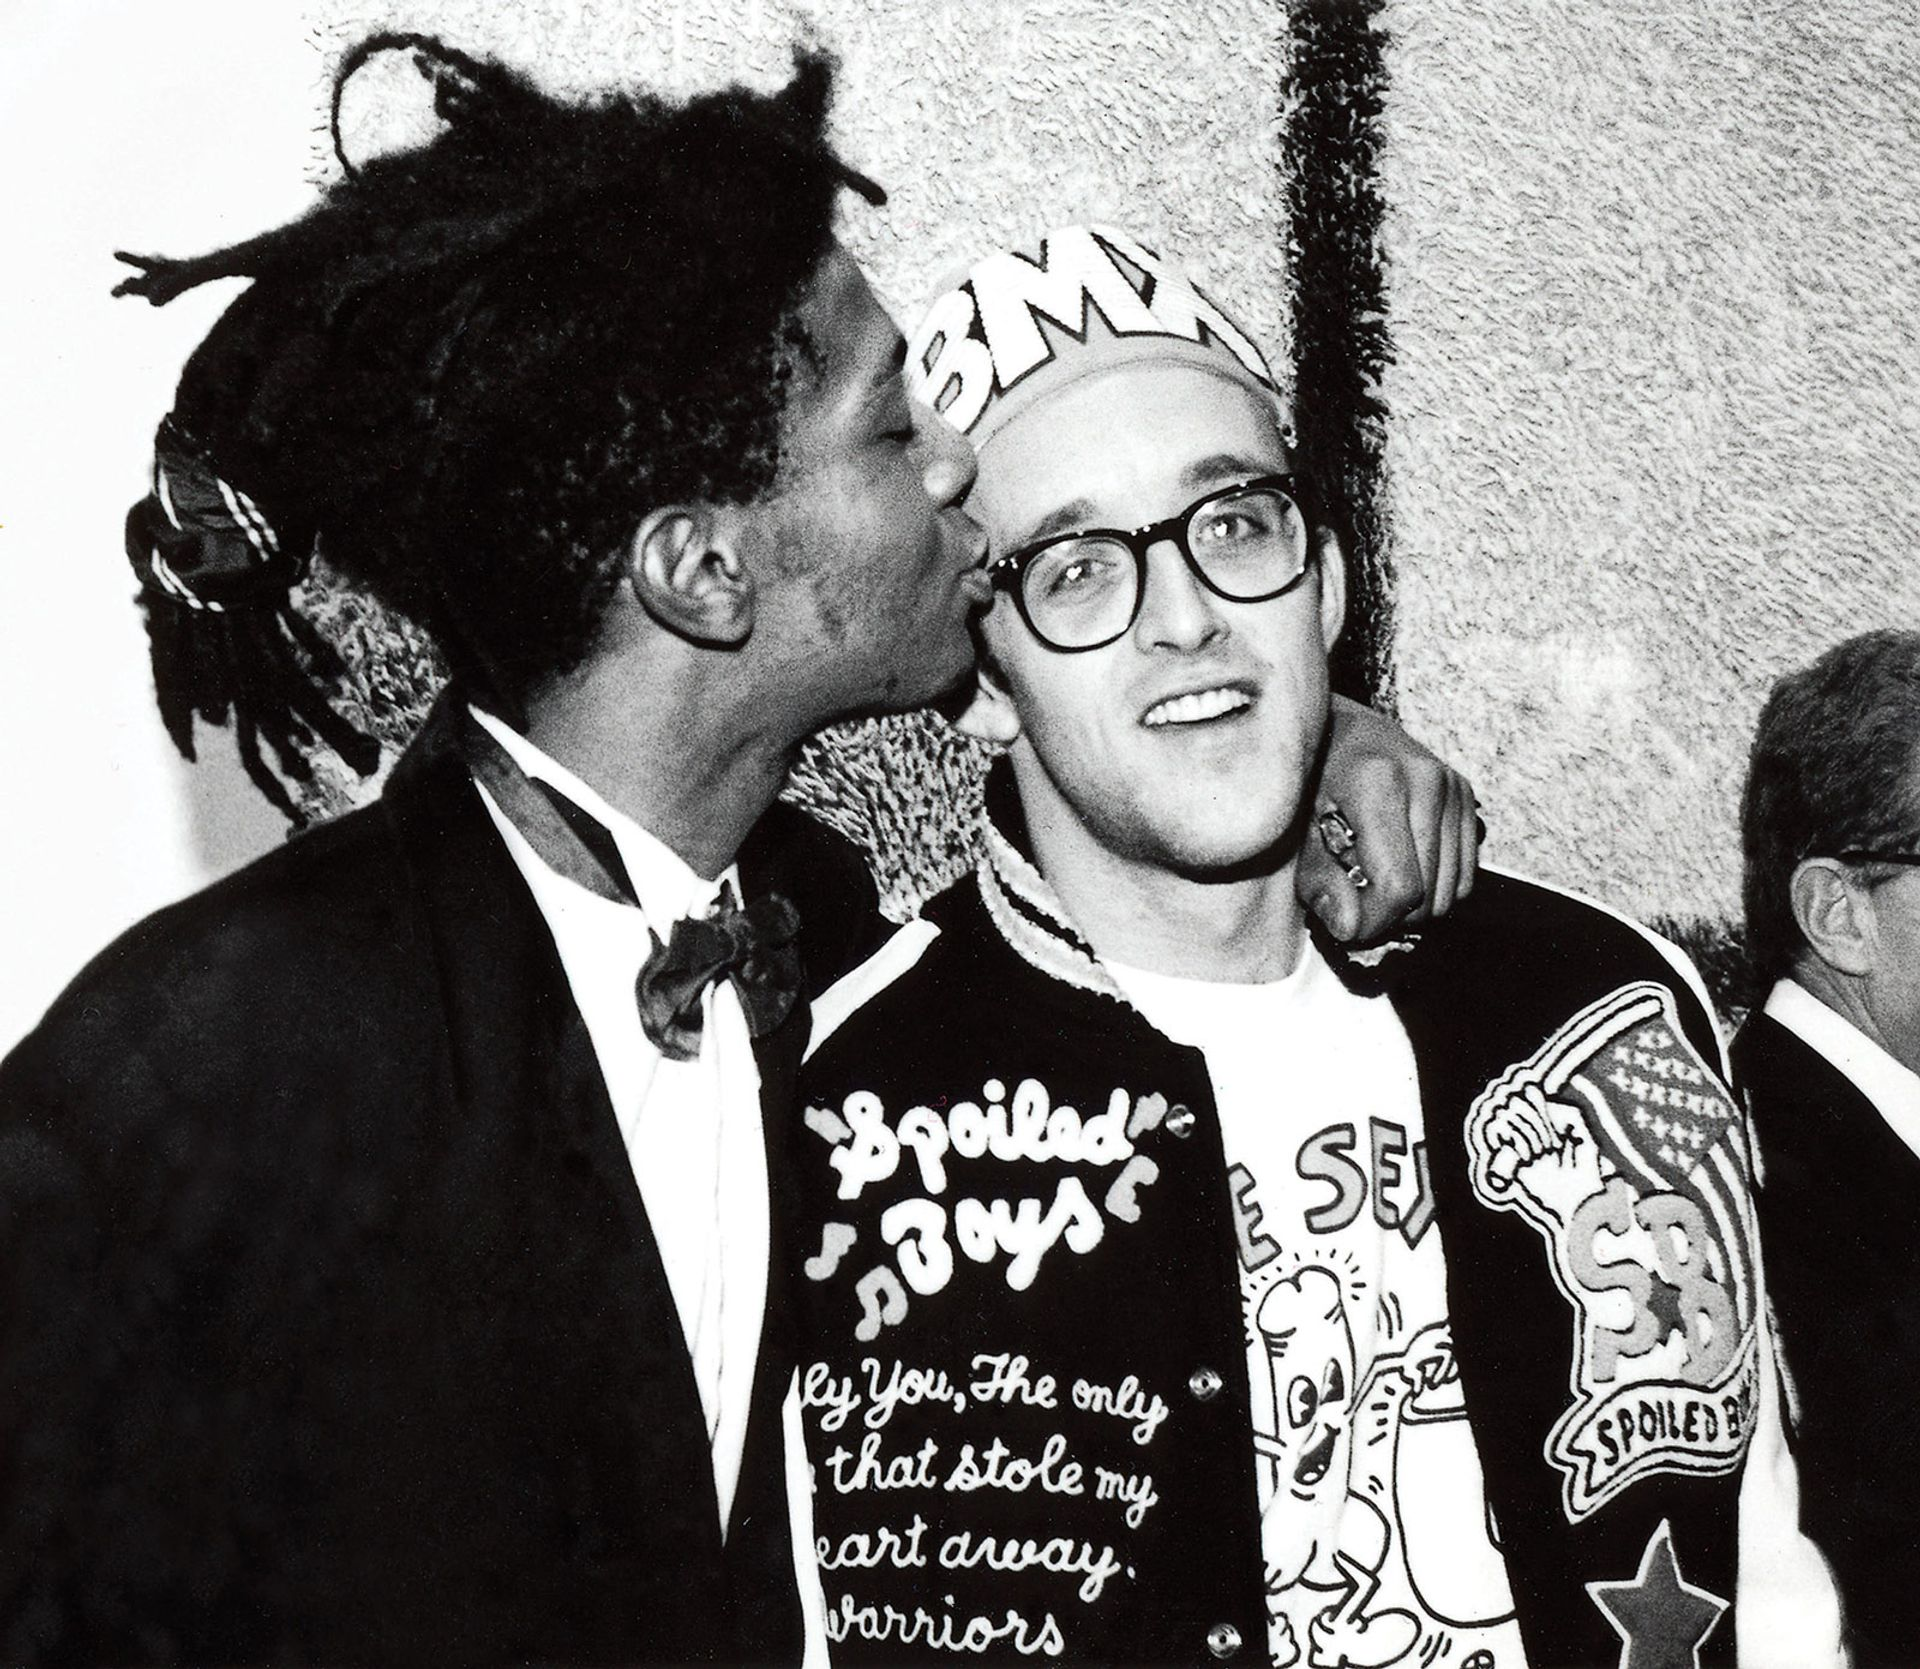 Keith Haring and Jean-Michel Basquiat in 1987 © George Hirose